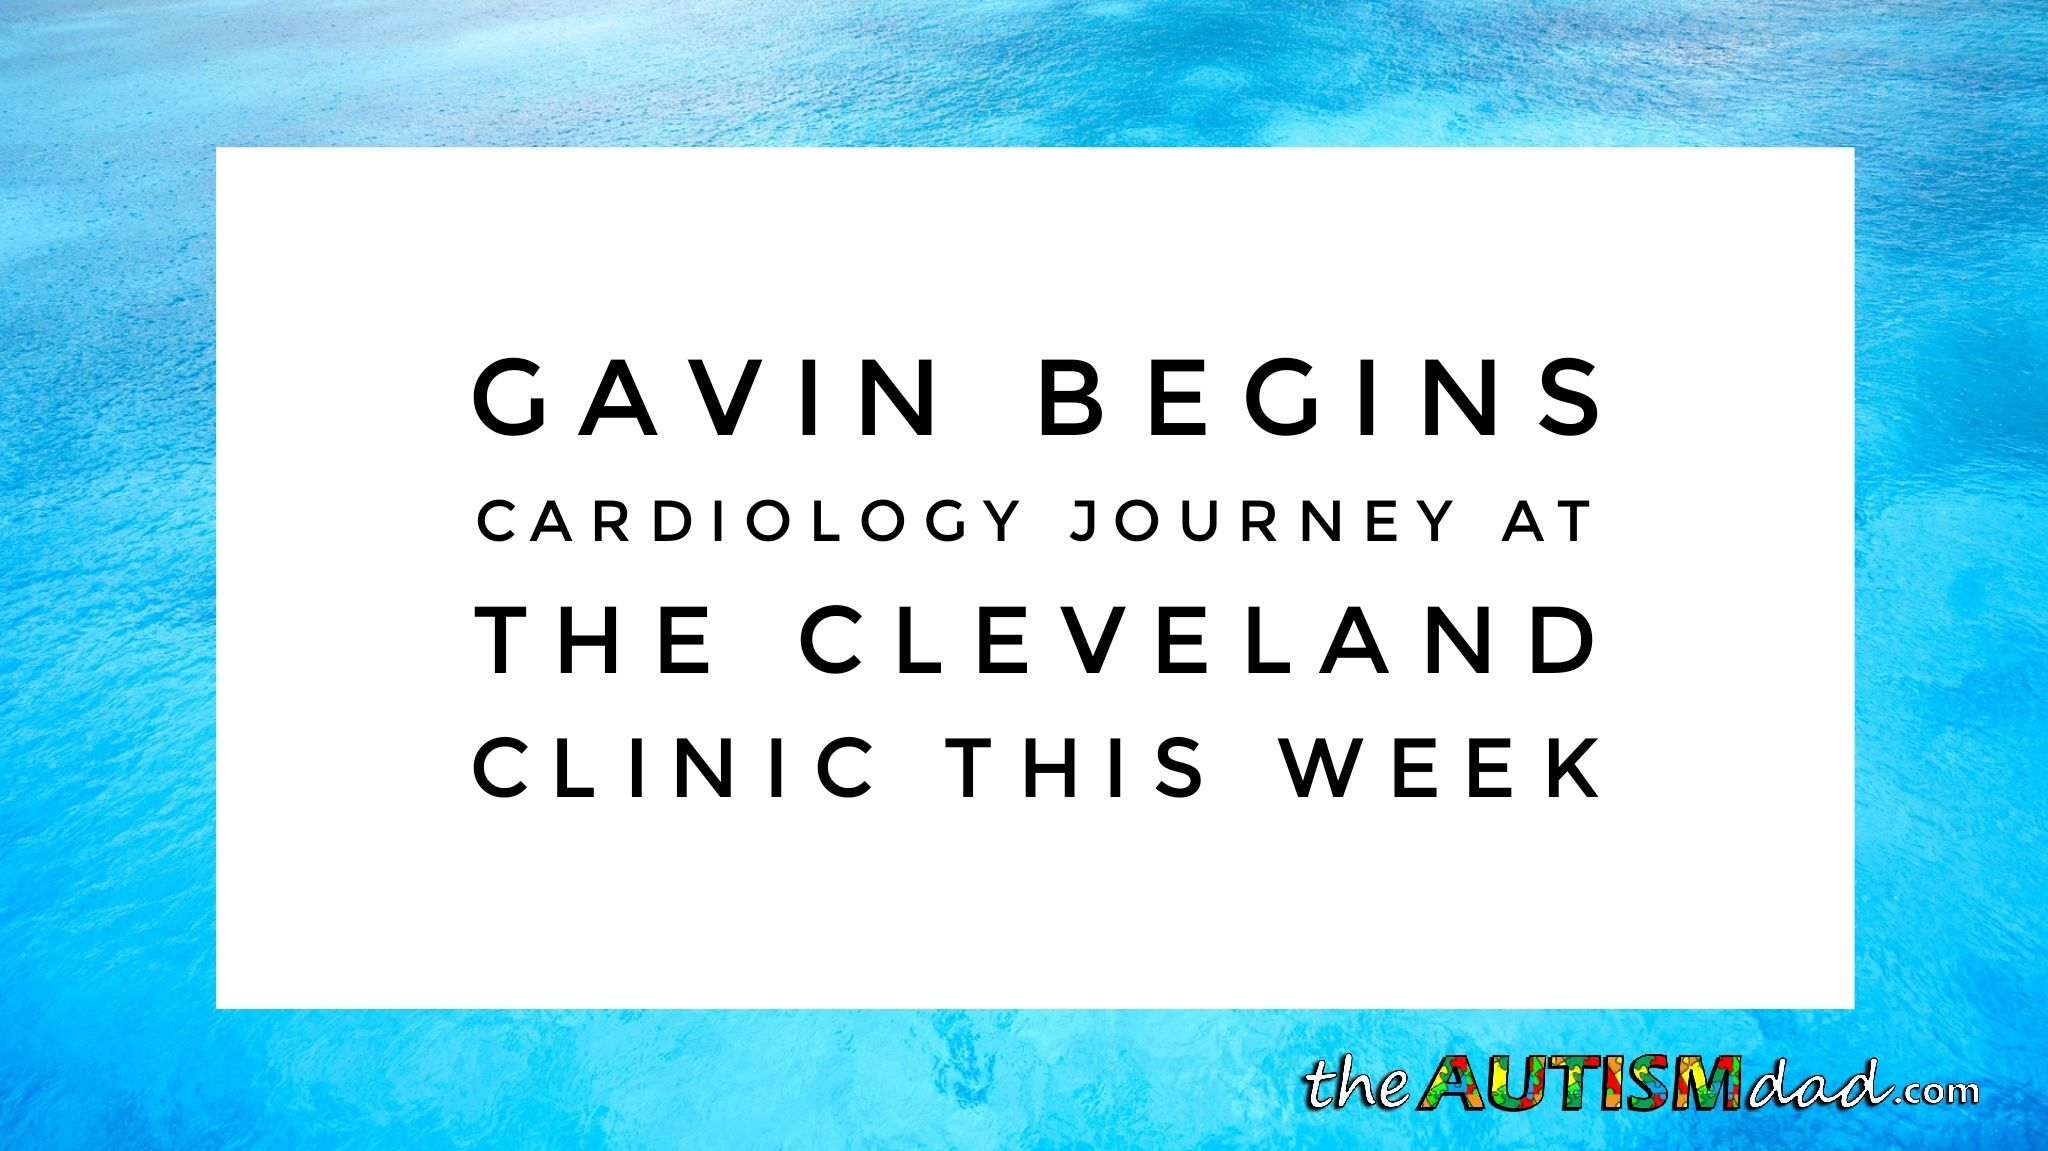 Gavin begins Cardiology journey at the @clevelandclinic this